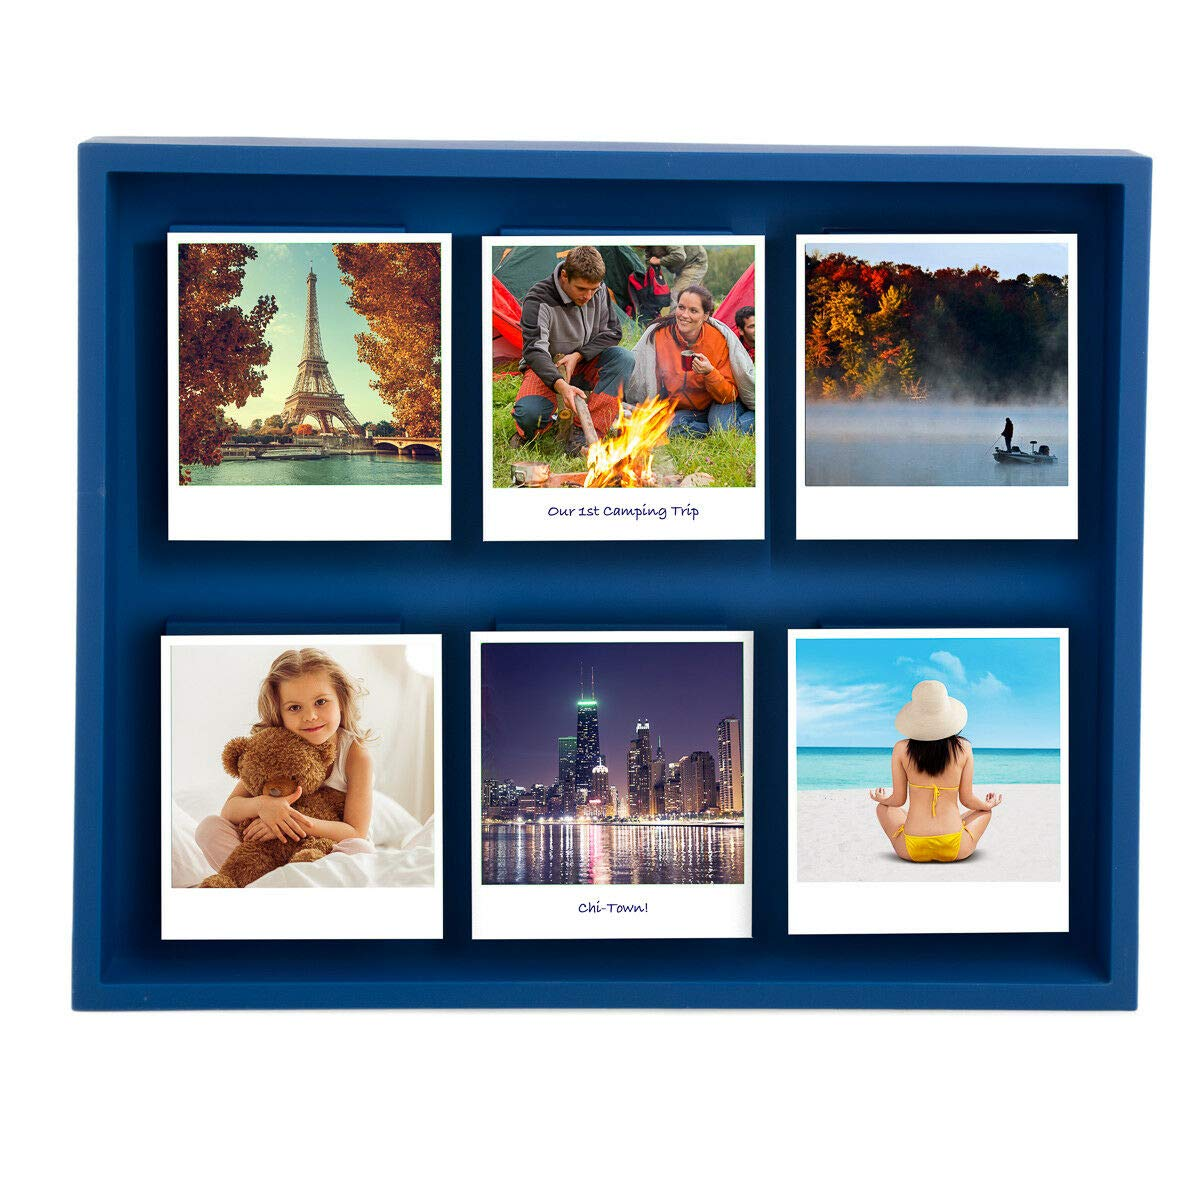 DN_DEA Wonderful Shadow Box Magnetic 12 x 10'' Polaroid Photo Frame Holds 6 Pictures Photographs Color Blue